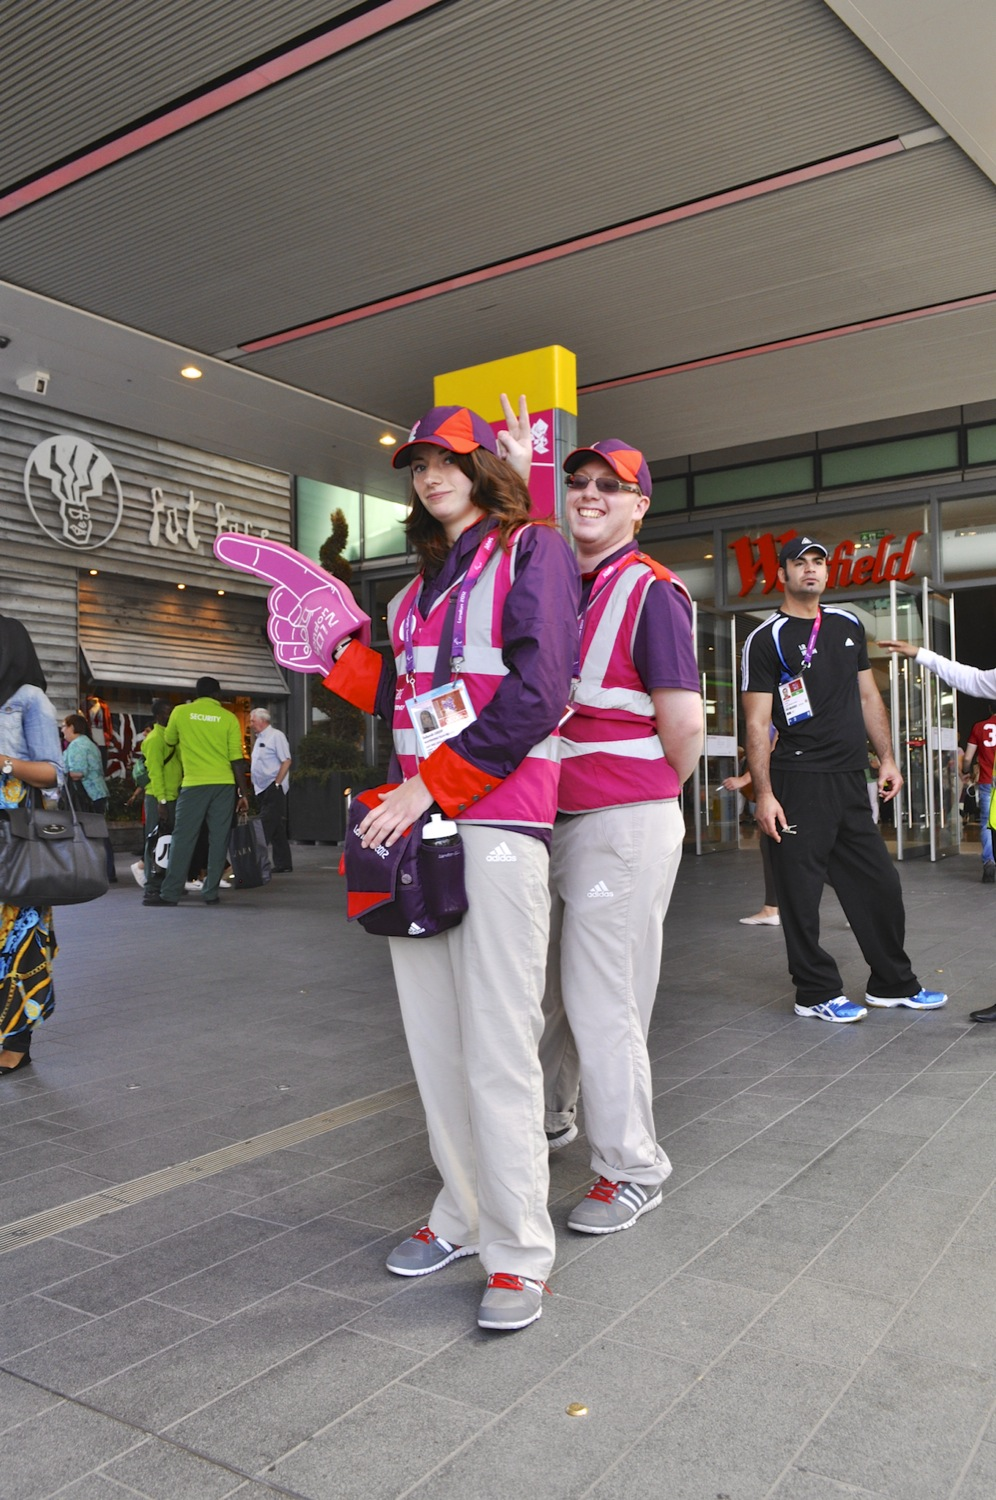 People at the Paralympics 14.jpg